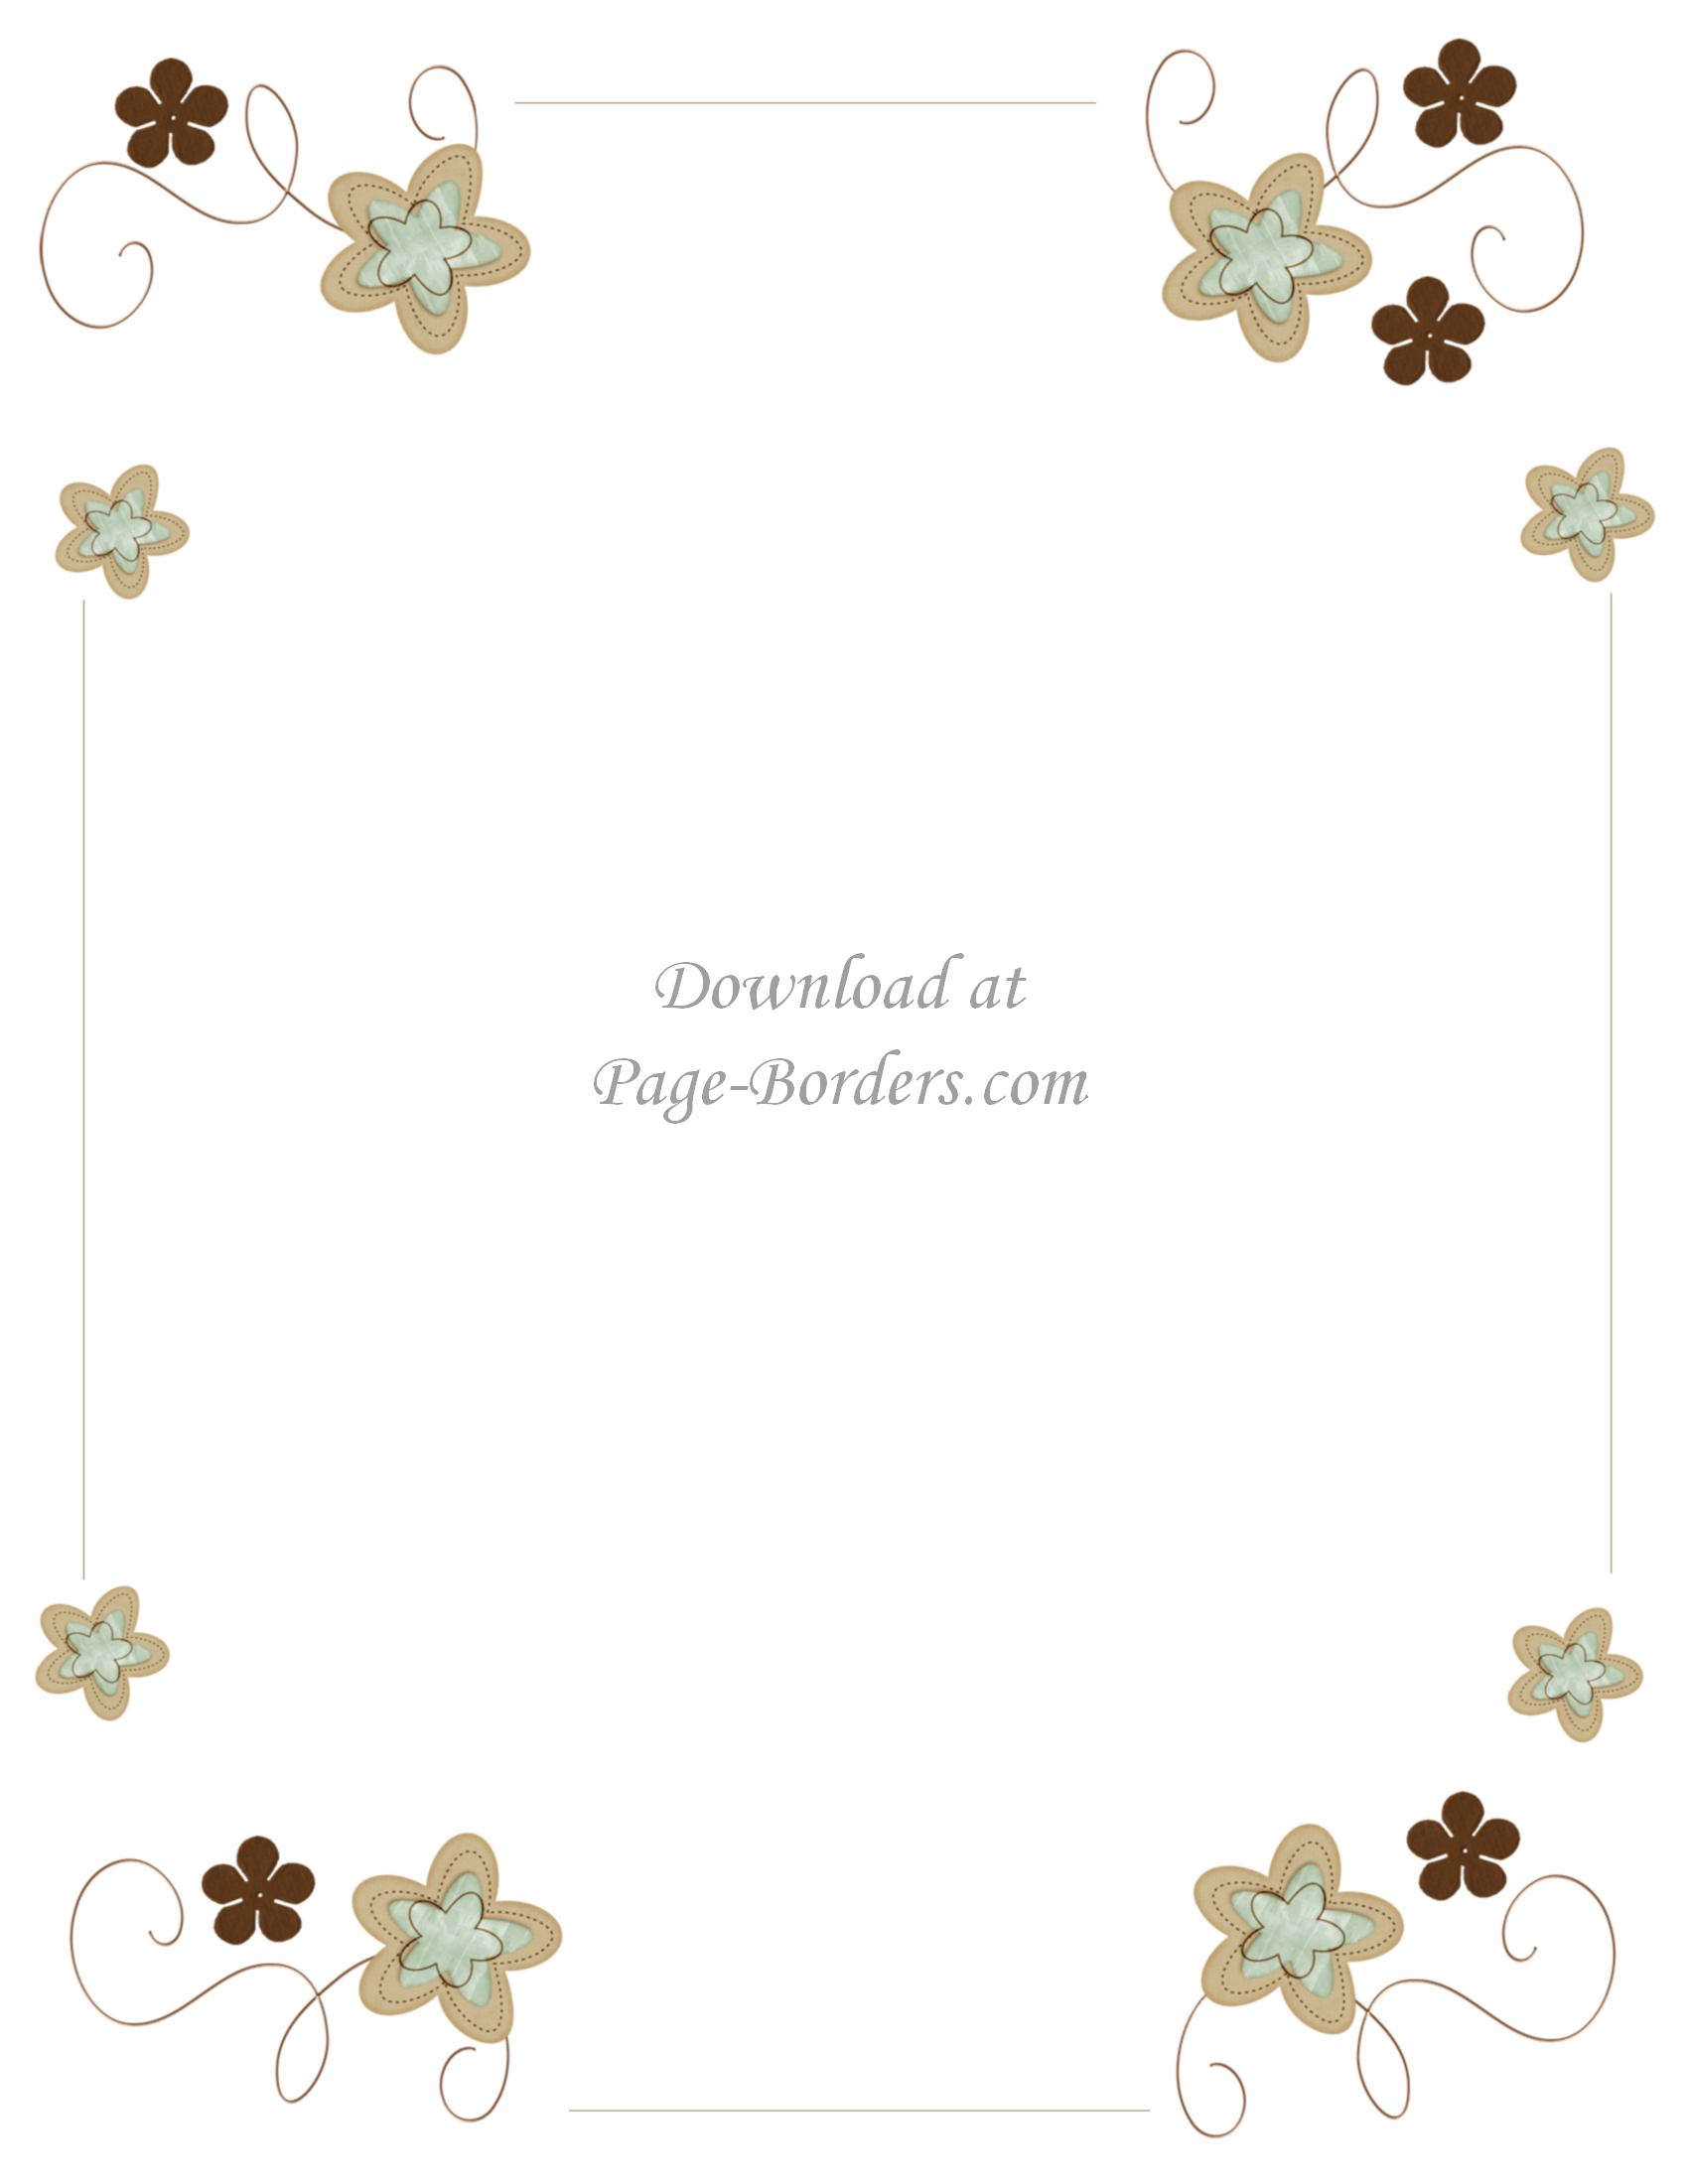 Free Flower Border Template | Personal & Commercial Use - Free Printable Page Borders